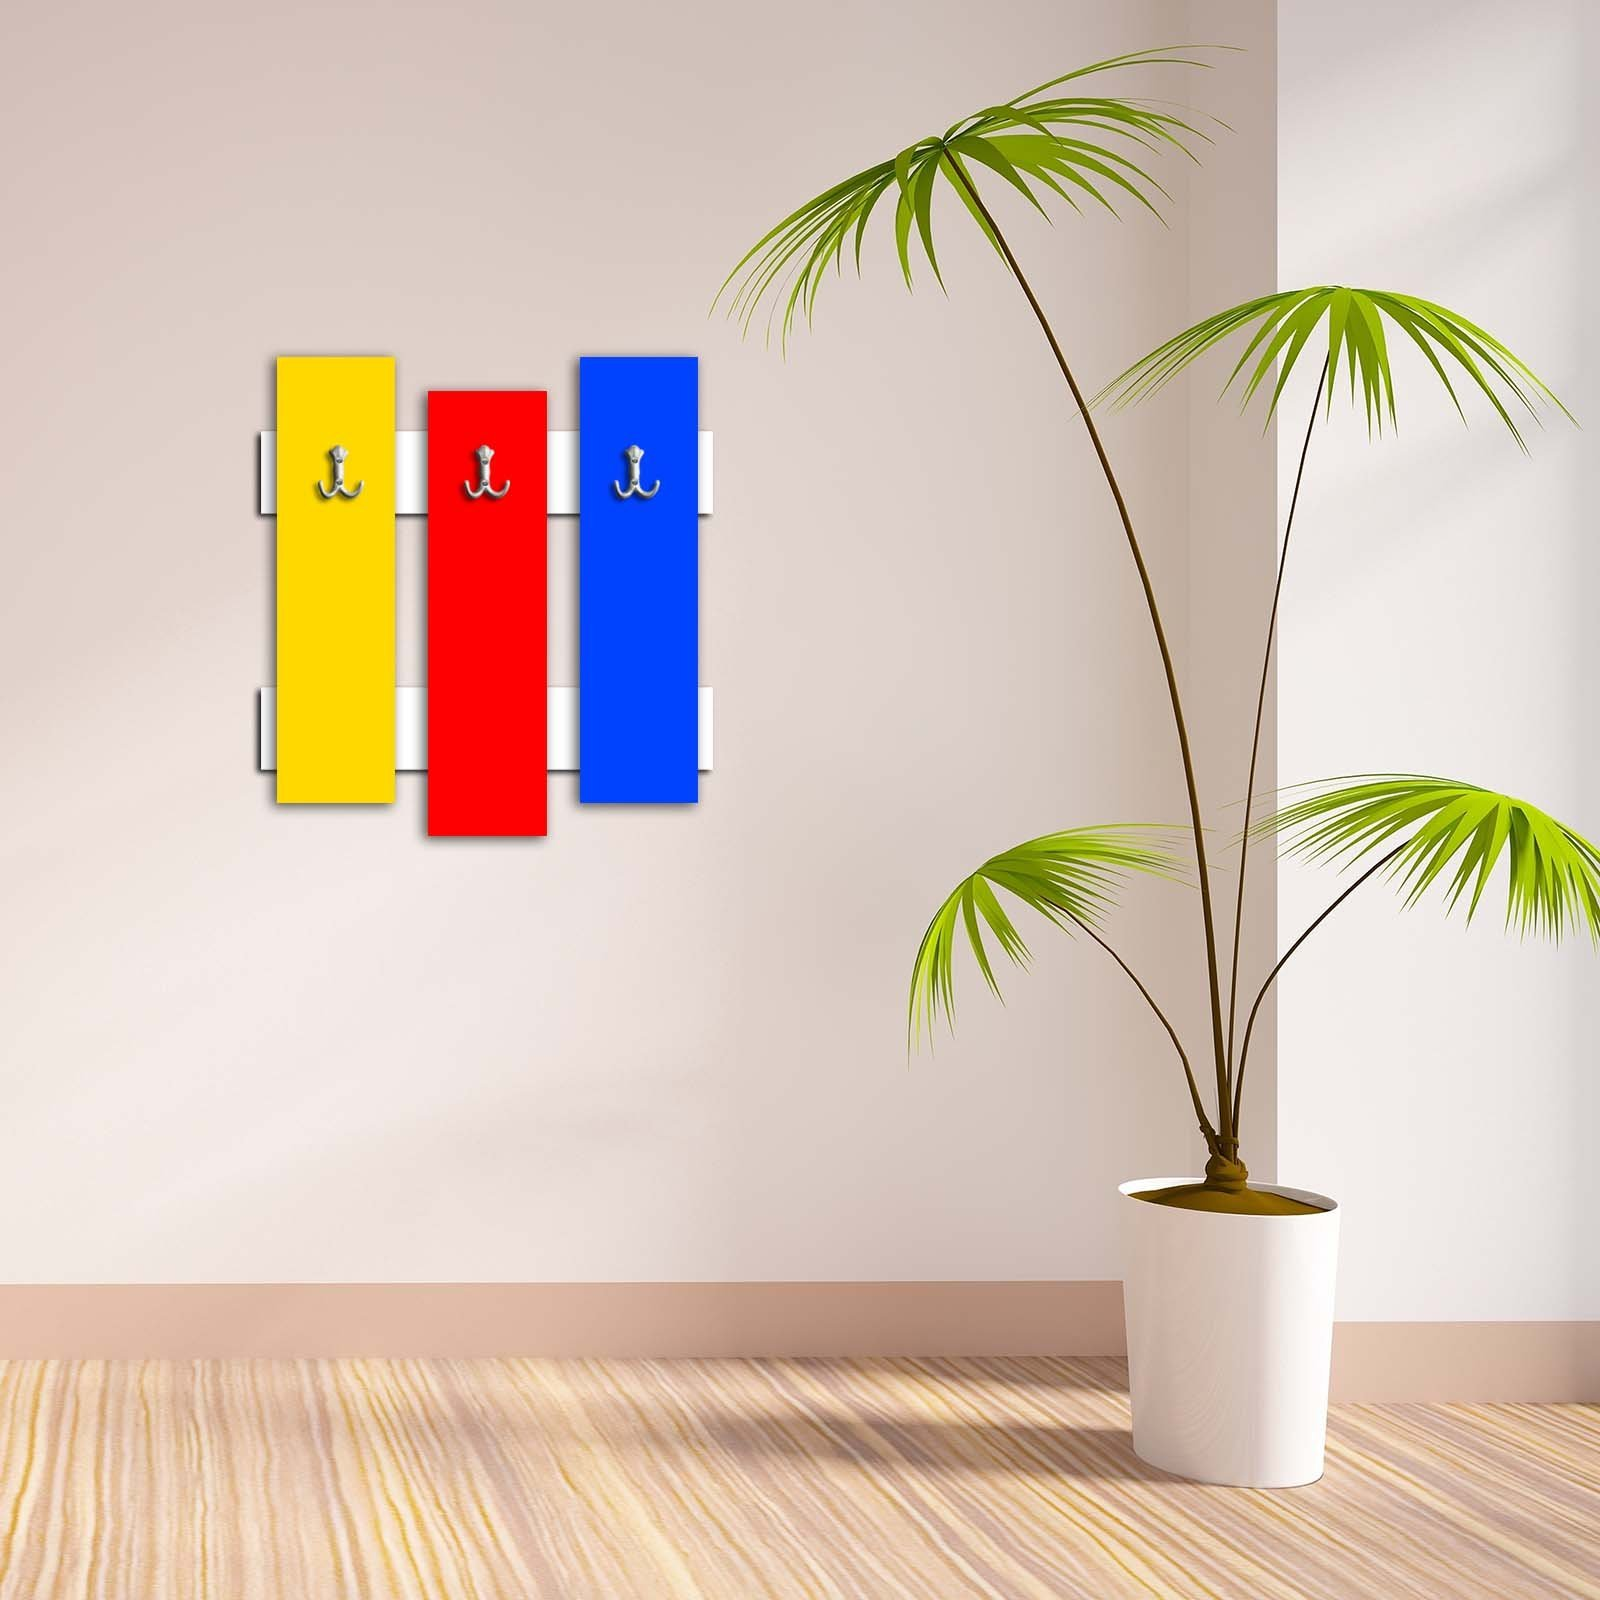 Decorative Wall Hook 3 Pcs Metal Key Holder 100% MDF Mounted Hanging Home Decor, Perfect for Foyers Entryway, Door Coats Hats Towels Scarfs Bags Red Yellow Dark Blue Colorful Pattern Design Basic Plai